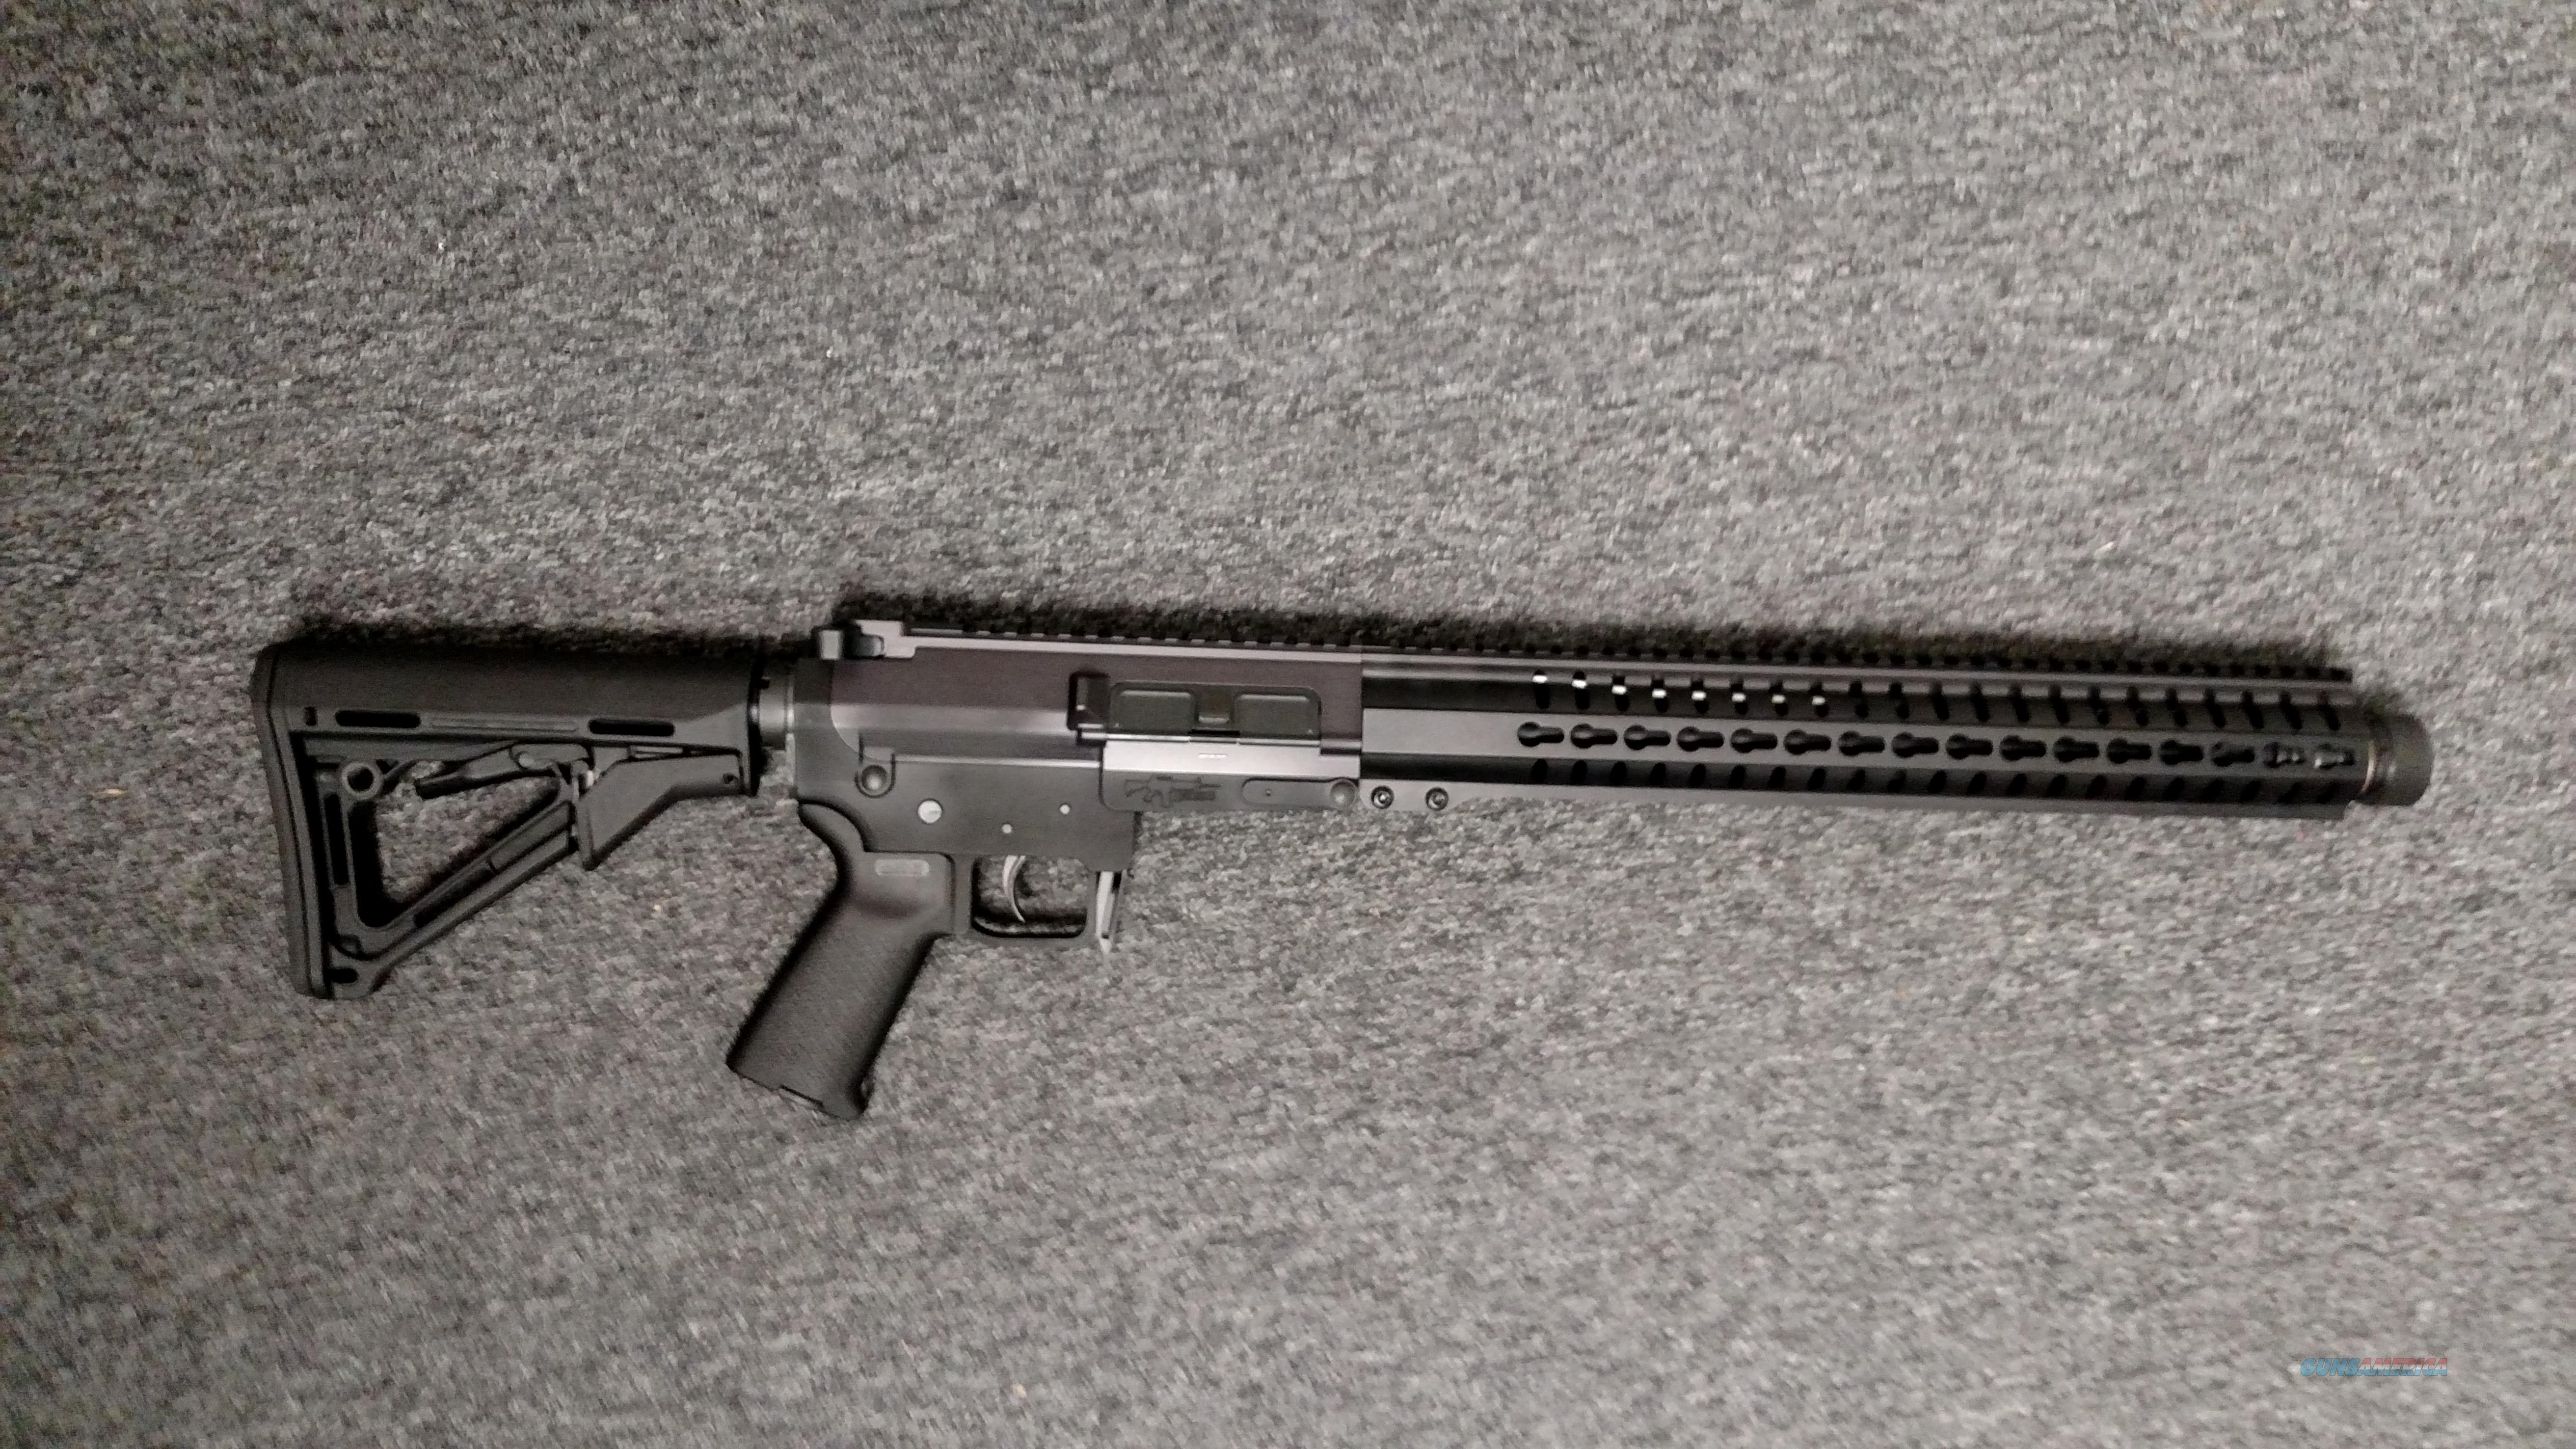 CMMG MK47 (AKS13 Mutant, 7.62x39)  Guns > Rifles > AR-15 Rifles - Small Manufacturers > Complete Rifle